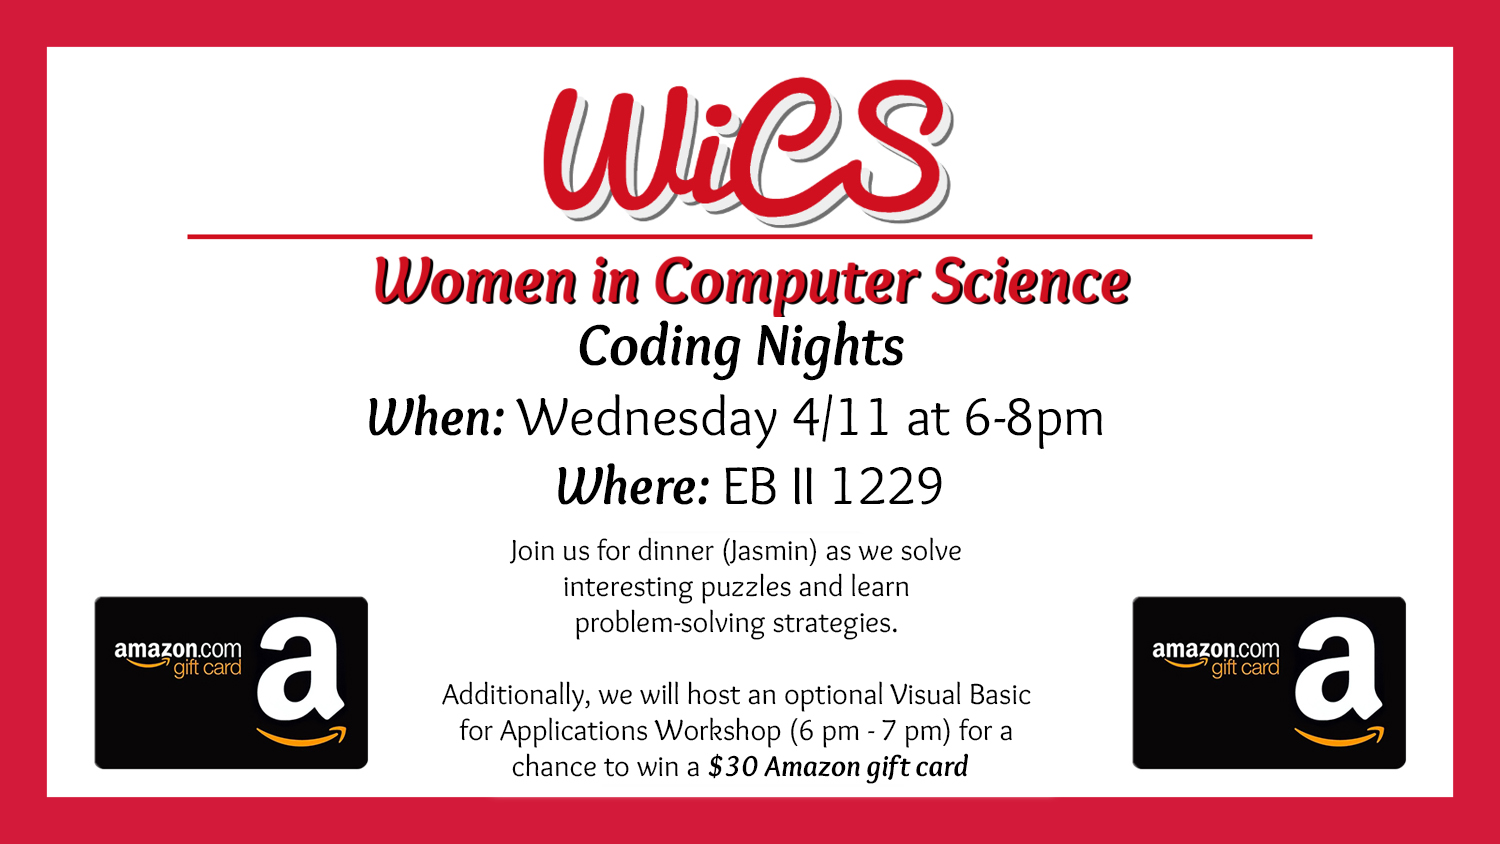 Join us for dinner as we solve interesting puzzles and learn problem-solving strategies. It is a space for casual coding and finding new people who share your interests!     Additionally, we will host an optional Visual Basic for Applications Workshop (6-7P) for a chance to win a $30 Amazon gift card.